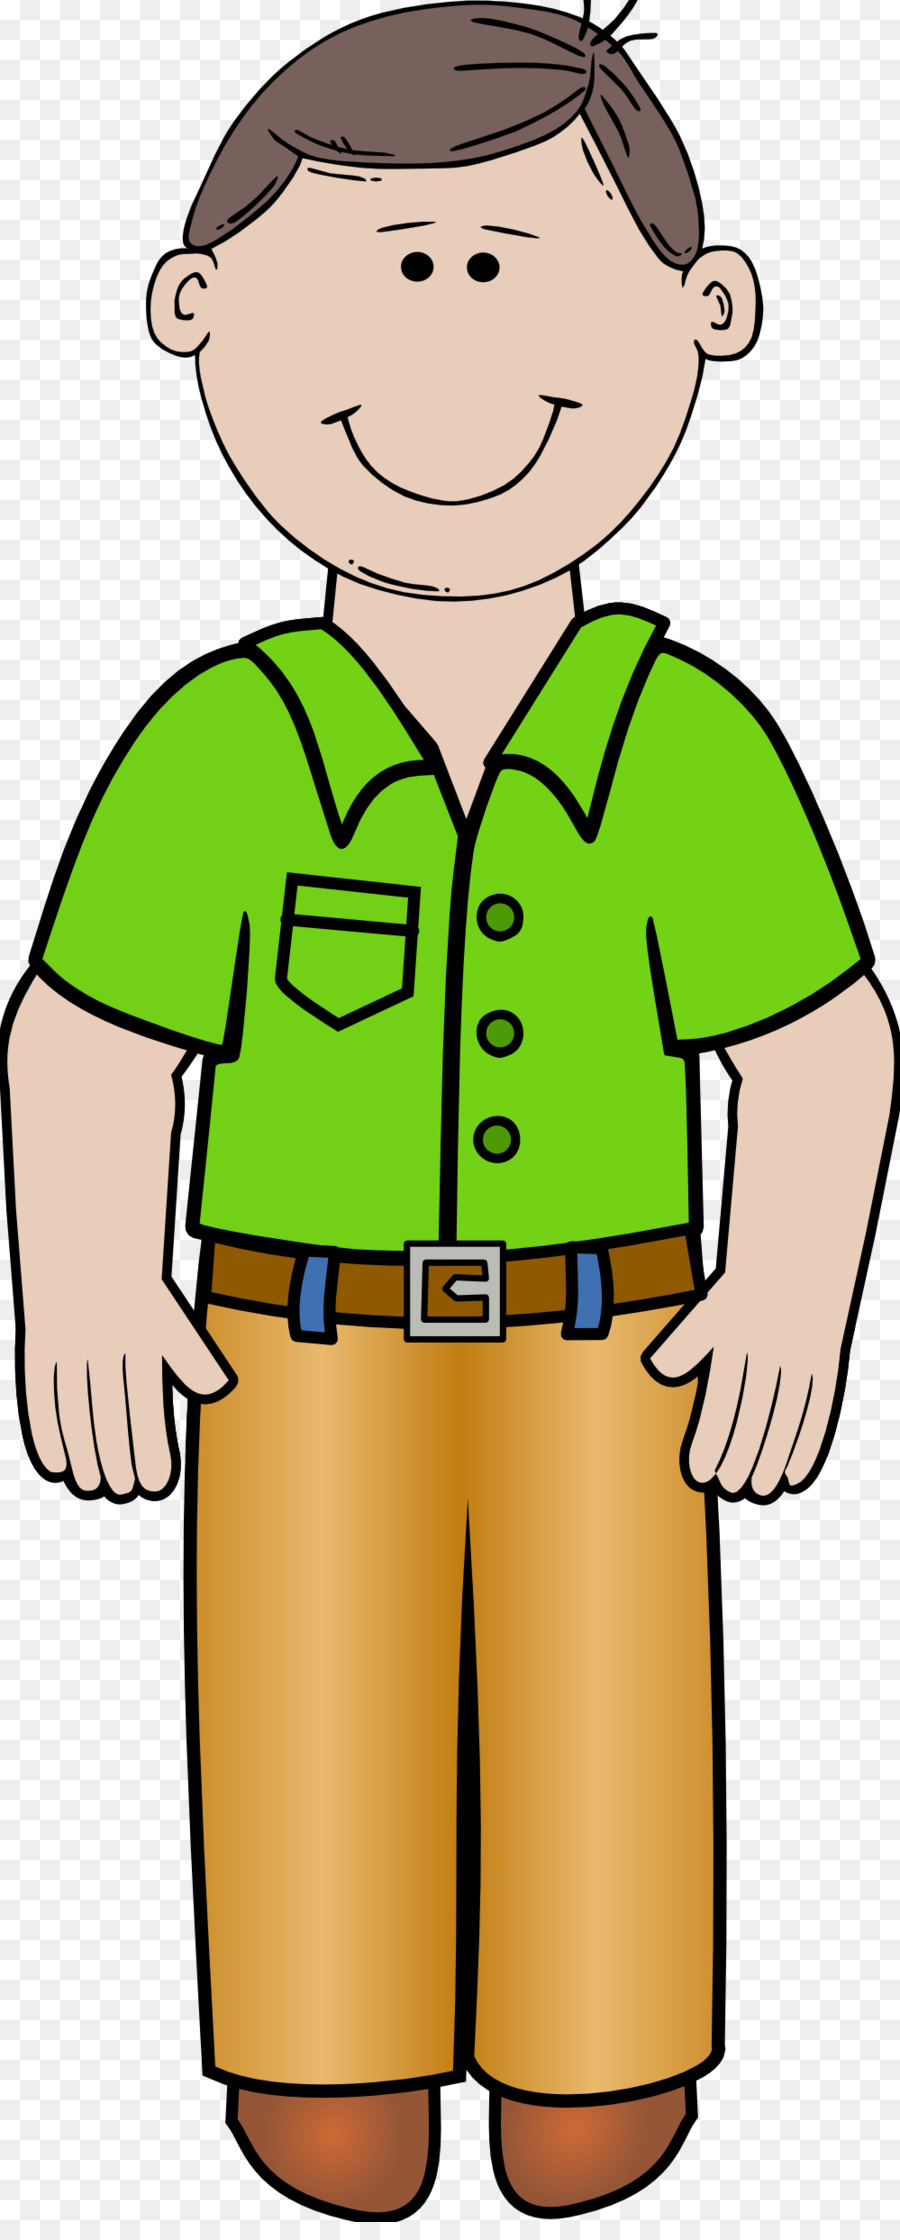 father mother cartoon clip art overwhelmed dad cliparts png rh kisspng com clipart dad and mom dad clipart free